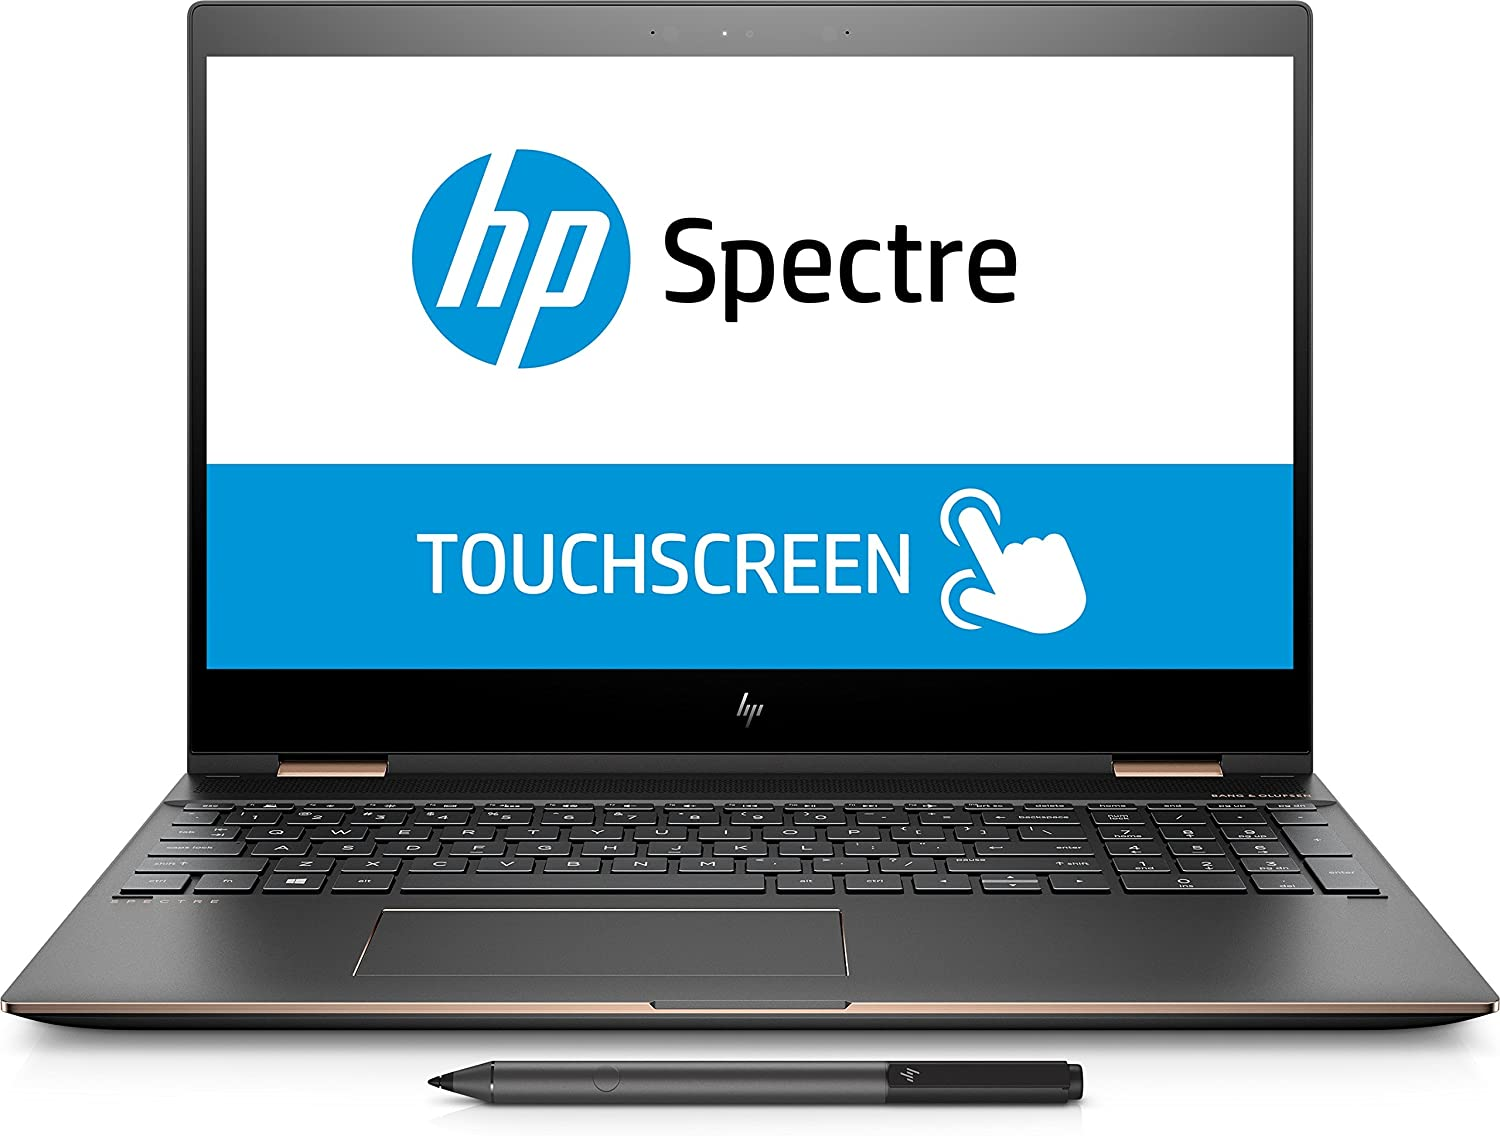 Hp Spectre X360 15 Ch055na 3dl15ea 15 6 Touchscreen Hd 4k Laptop Intel Core I7 8705g 8gb Ram 512gb Ssd Windows 10 Home Dark Silver Amazon Co Uk Computers Accessories